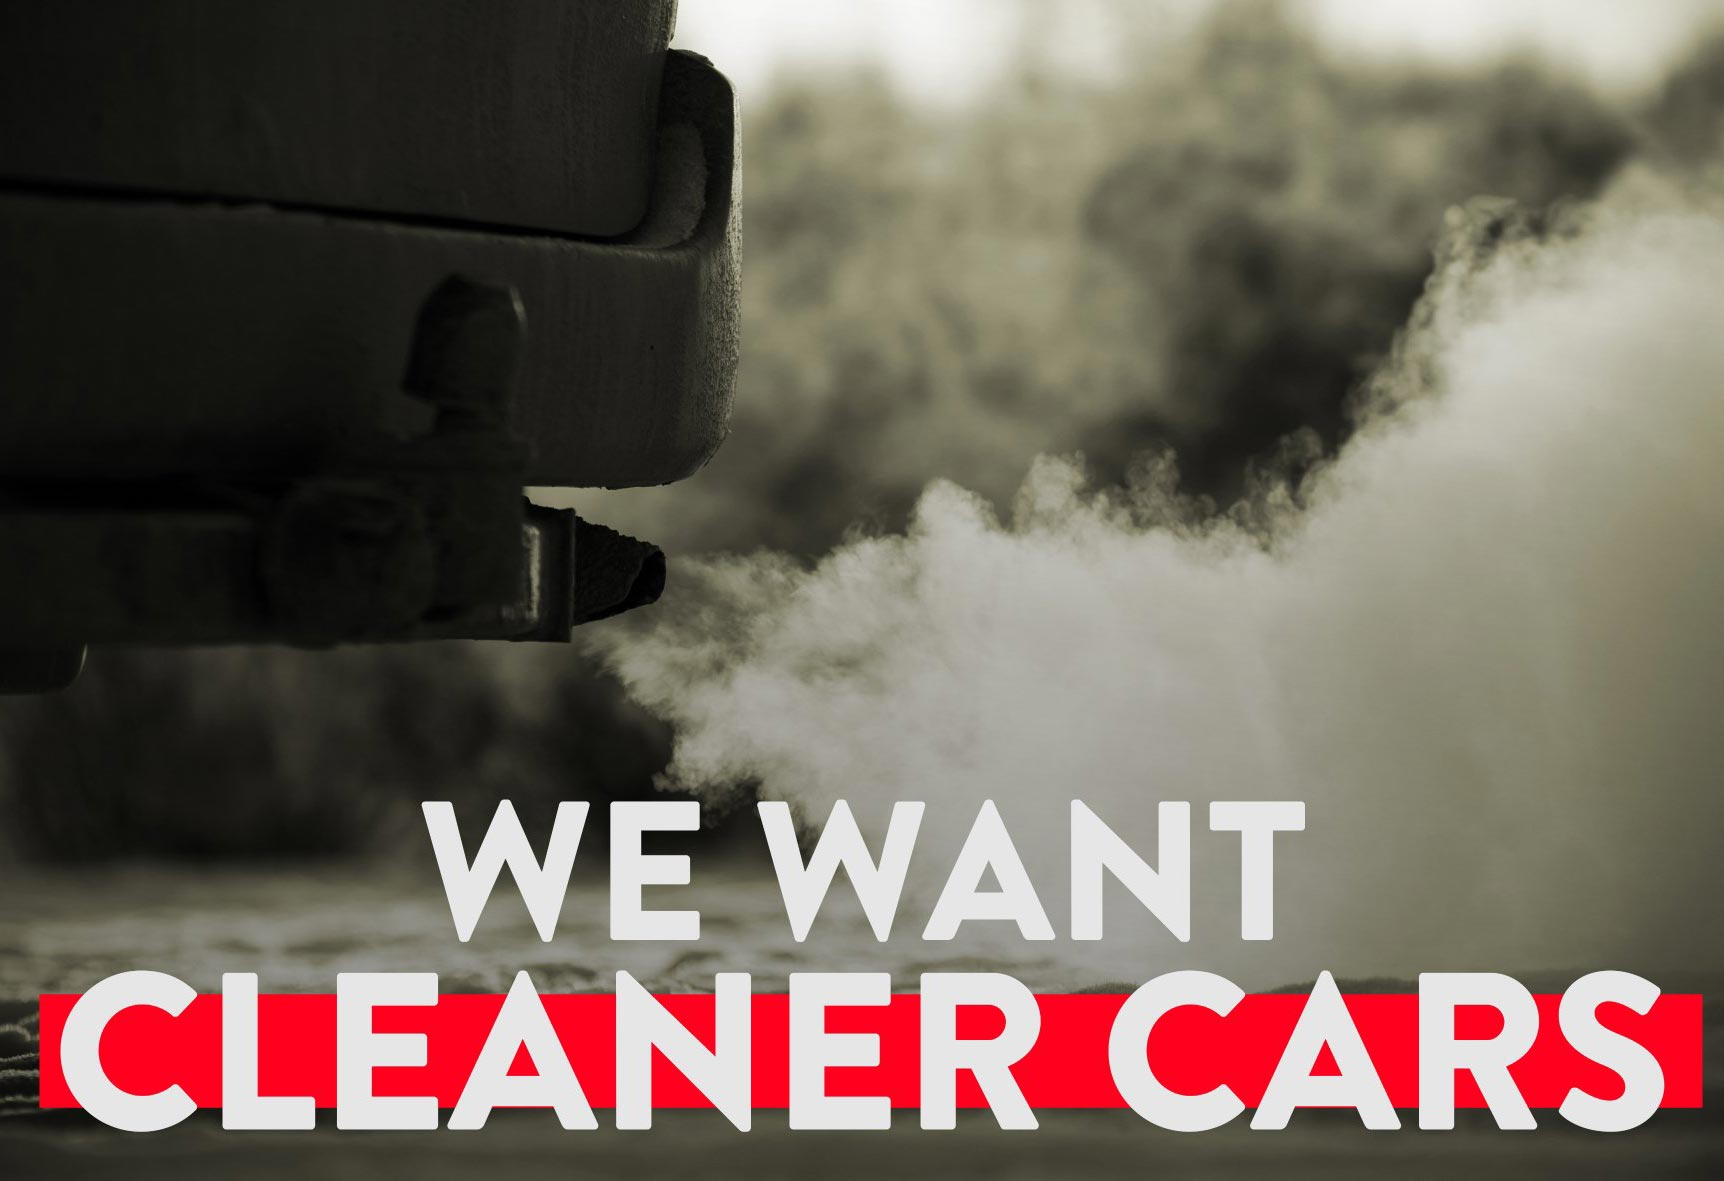 car and exhaust fumes and words - We want cleaner cars